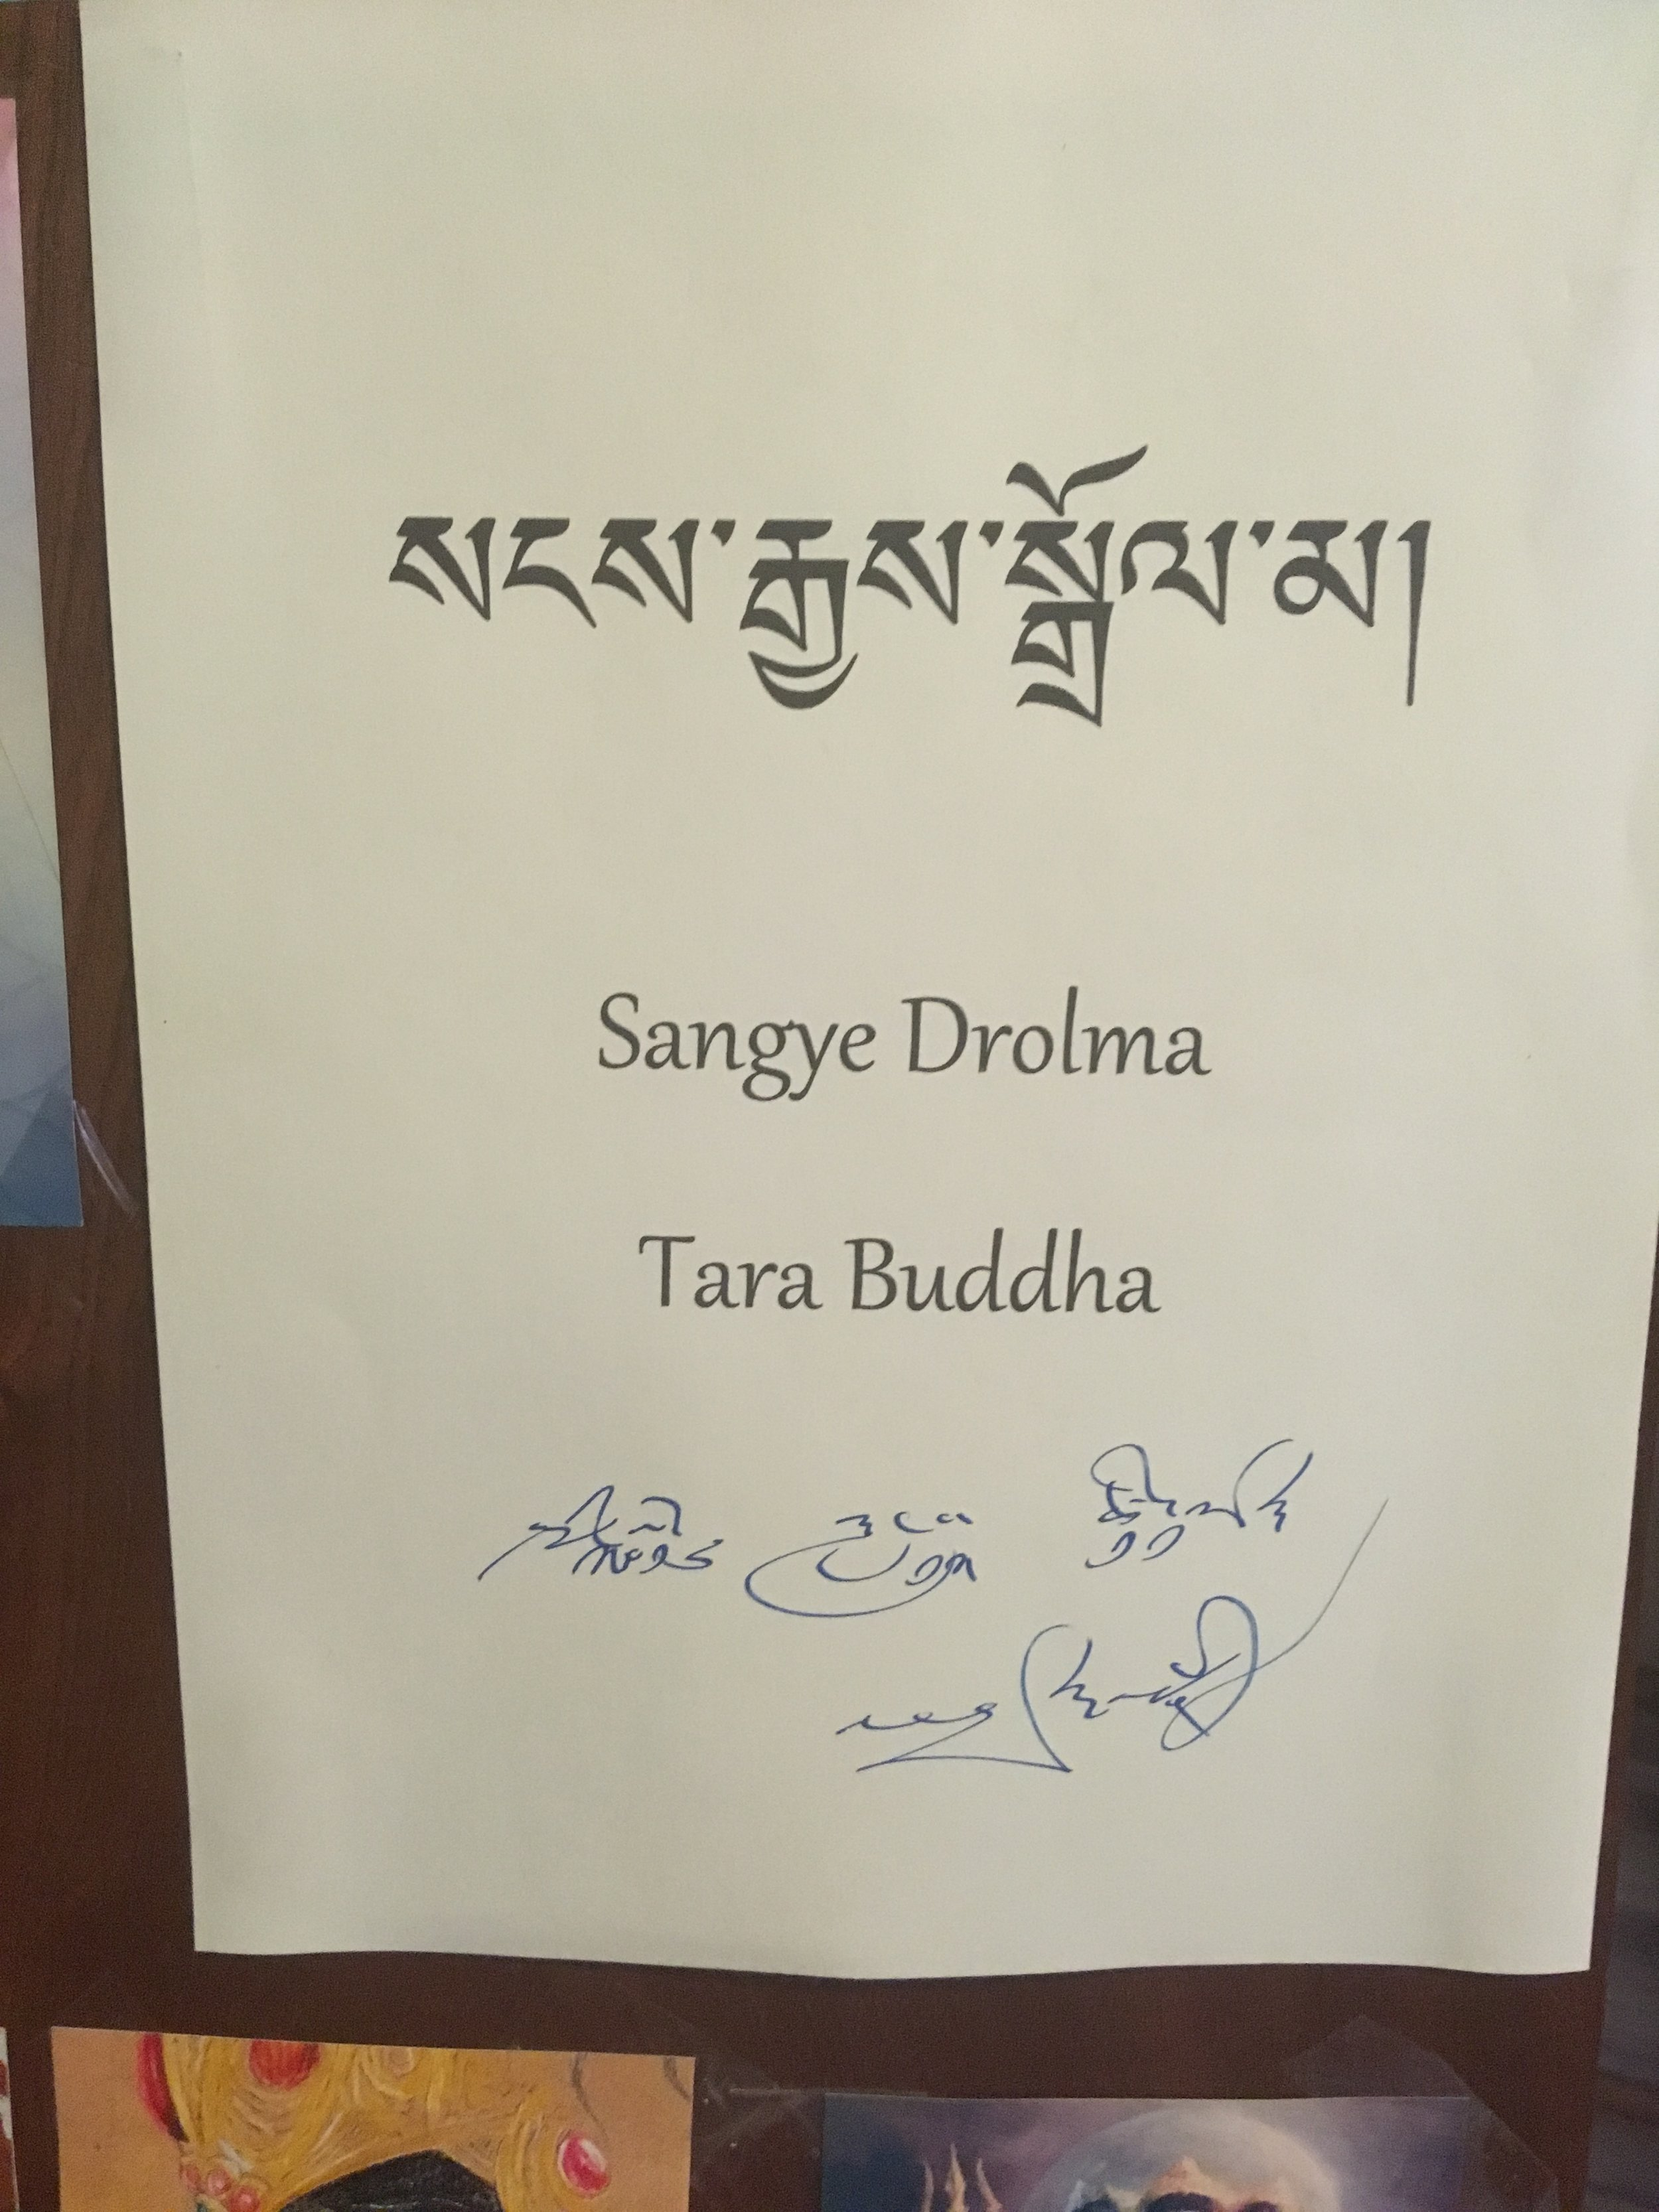 Given to me by Master Khenpo